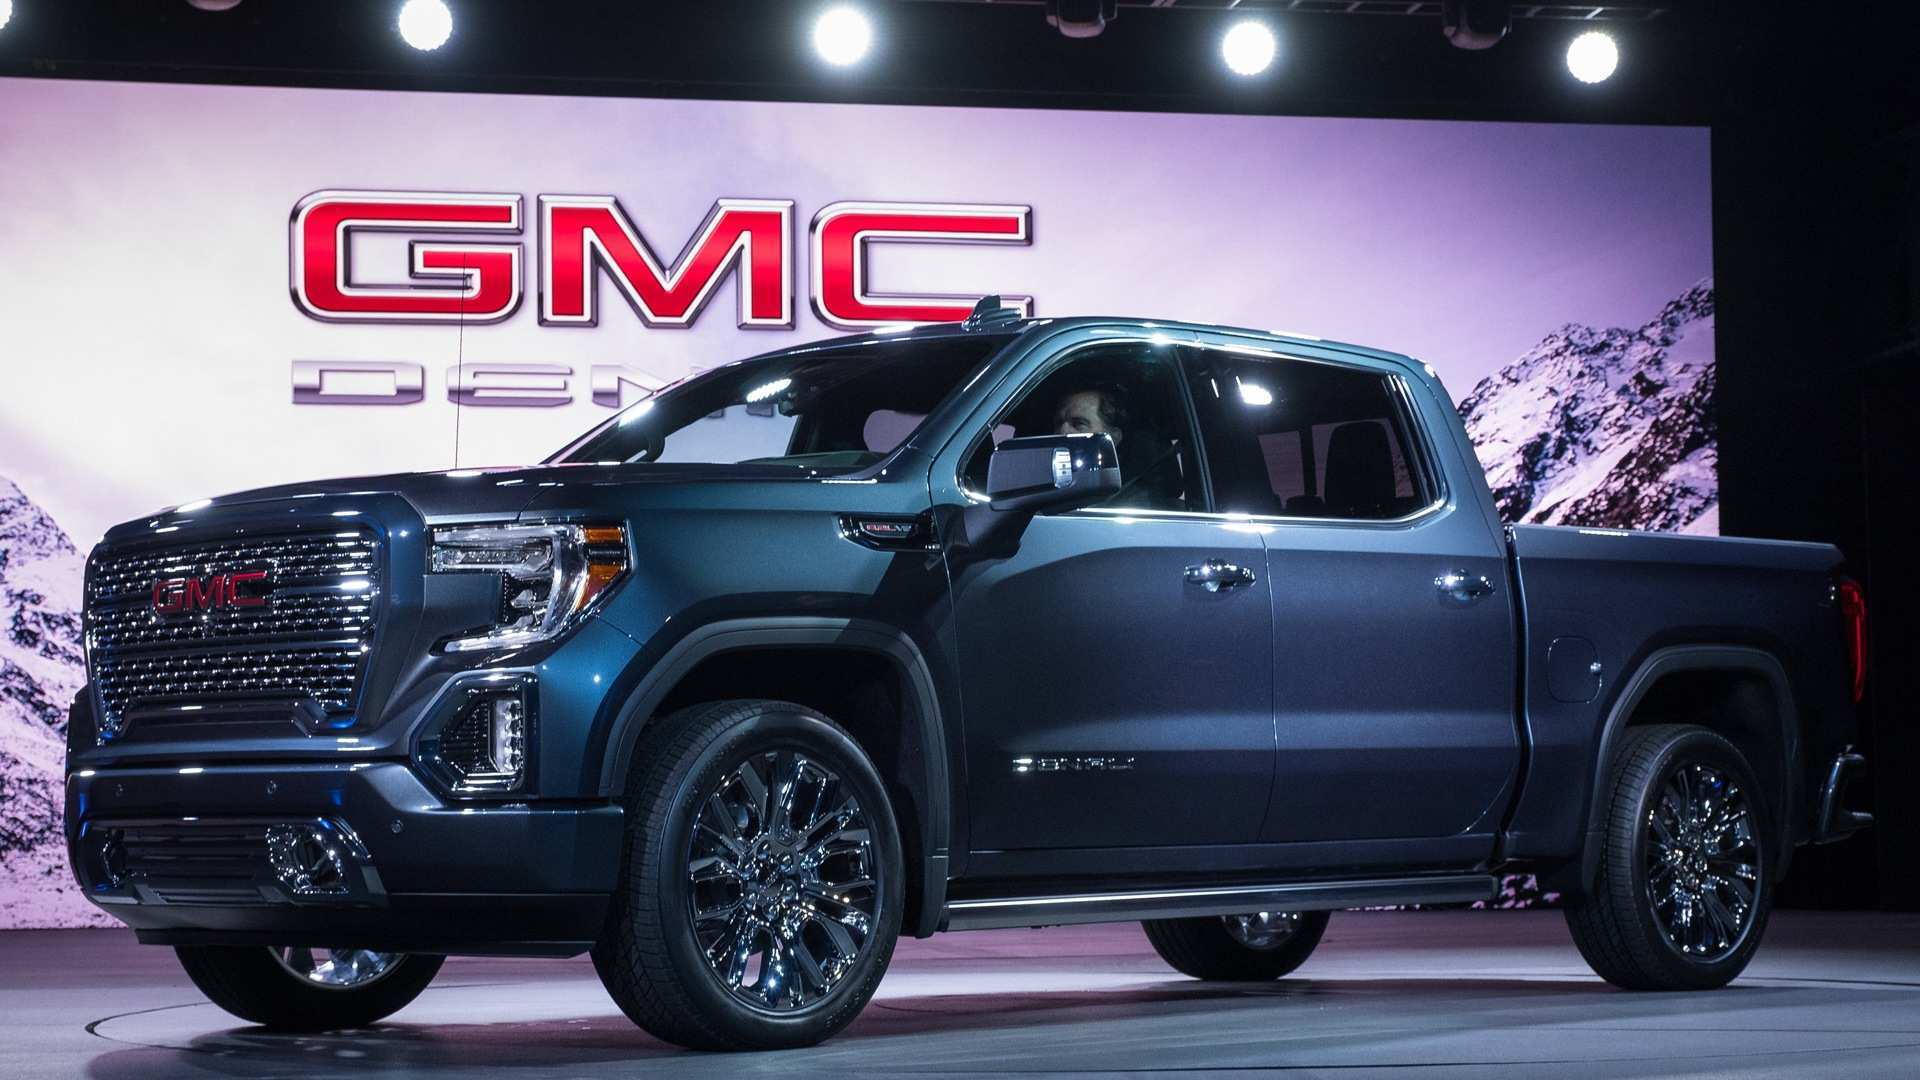 92 Best Review 2019 Gmc 1500 Release Date Concept for 2019 Gmc 1500 Release Date